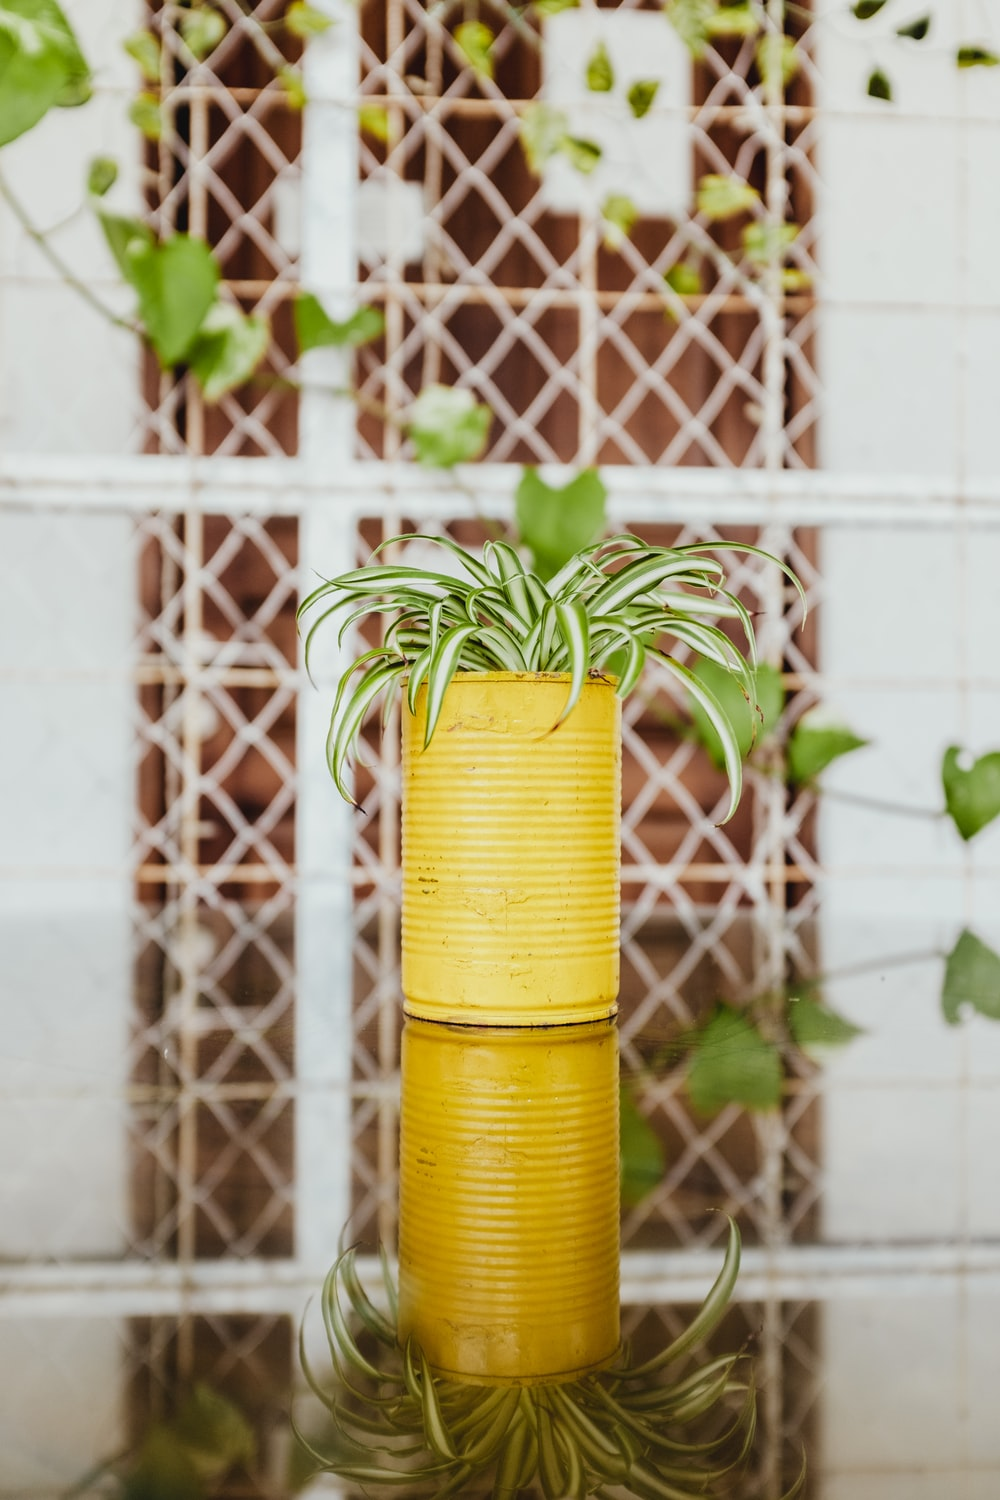 green spider plant in yellow can